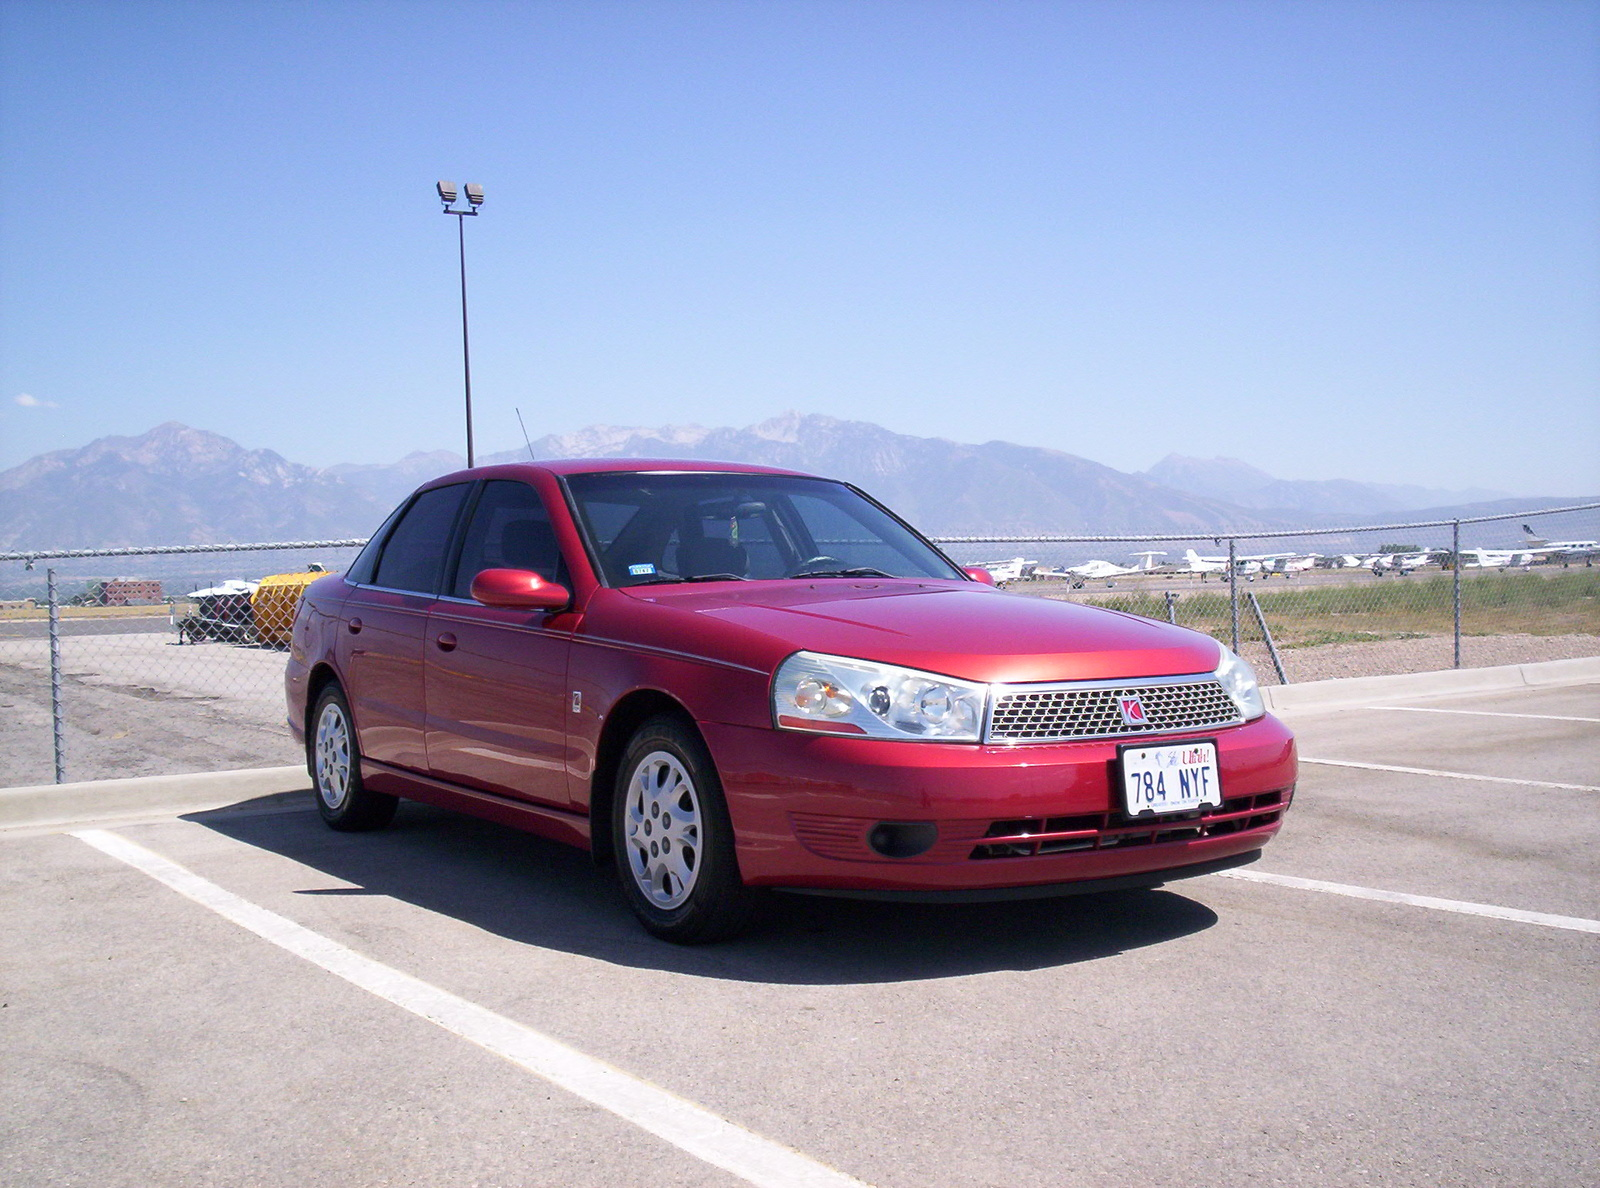 2003 Saturn L-Series 4 Dr L200 Sedan picture, exterior